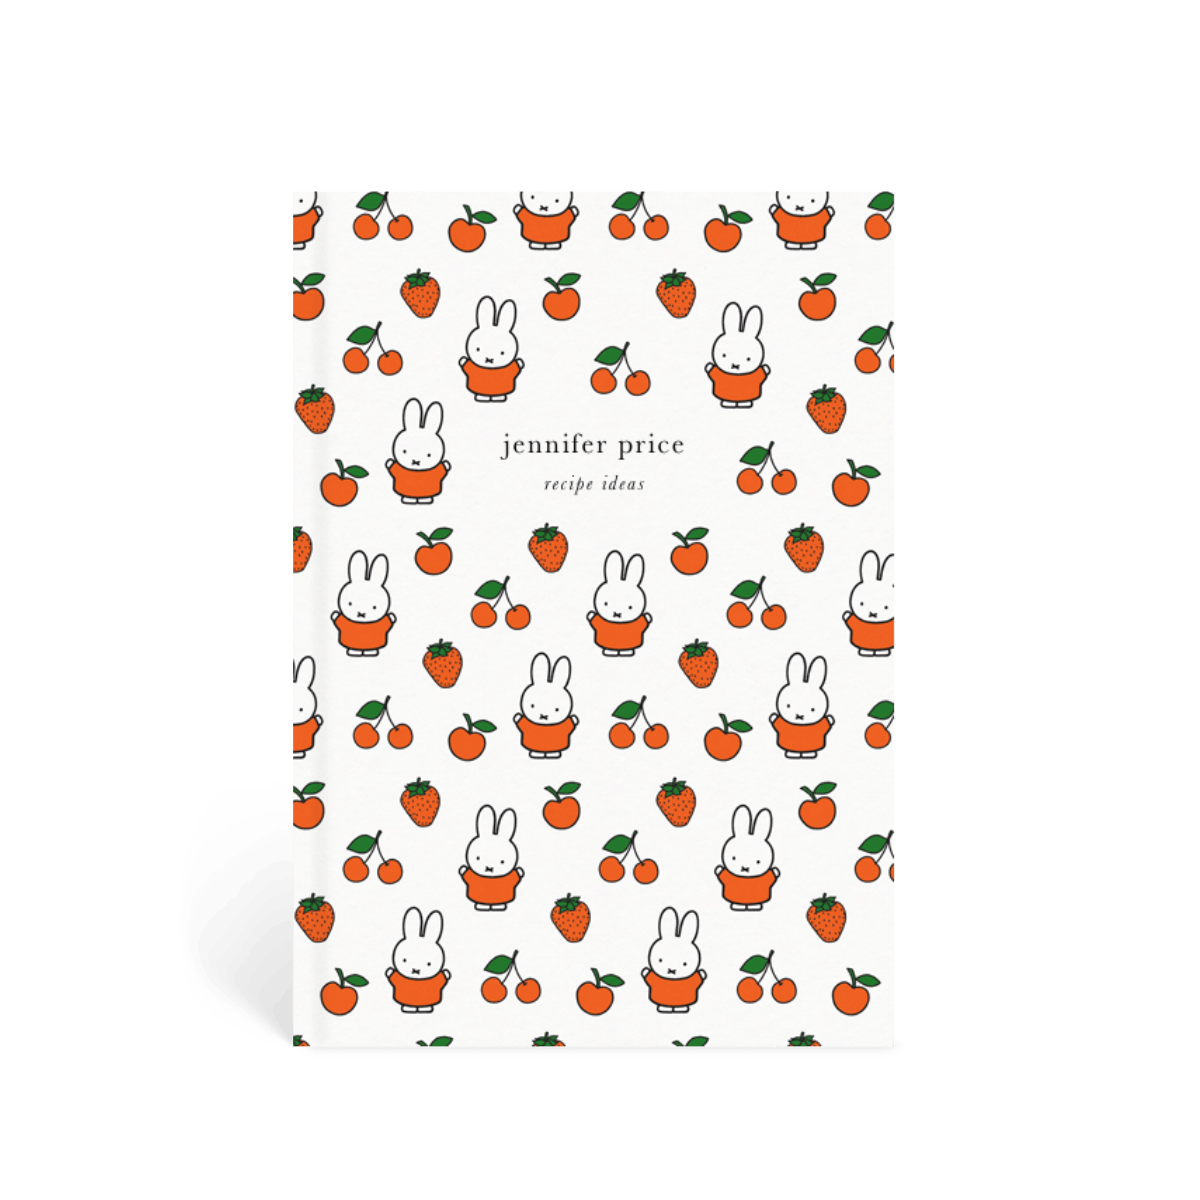 Https%3a%2f%2fwww.papier.com%2fproduct image%2f95598%2f25%2fstrawberry miffy 23972 front 1572966780.png?ixlib=rb 1.1